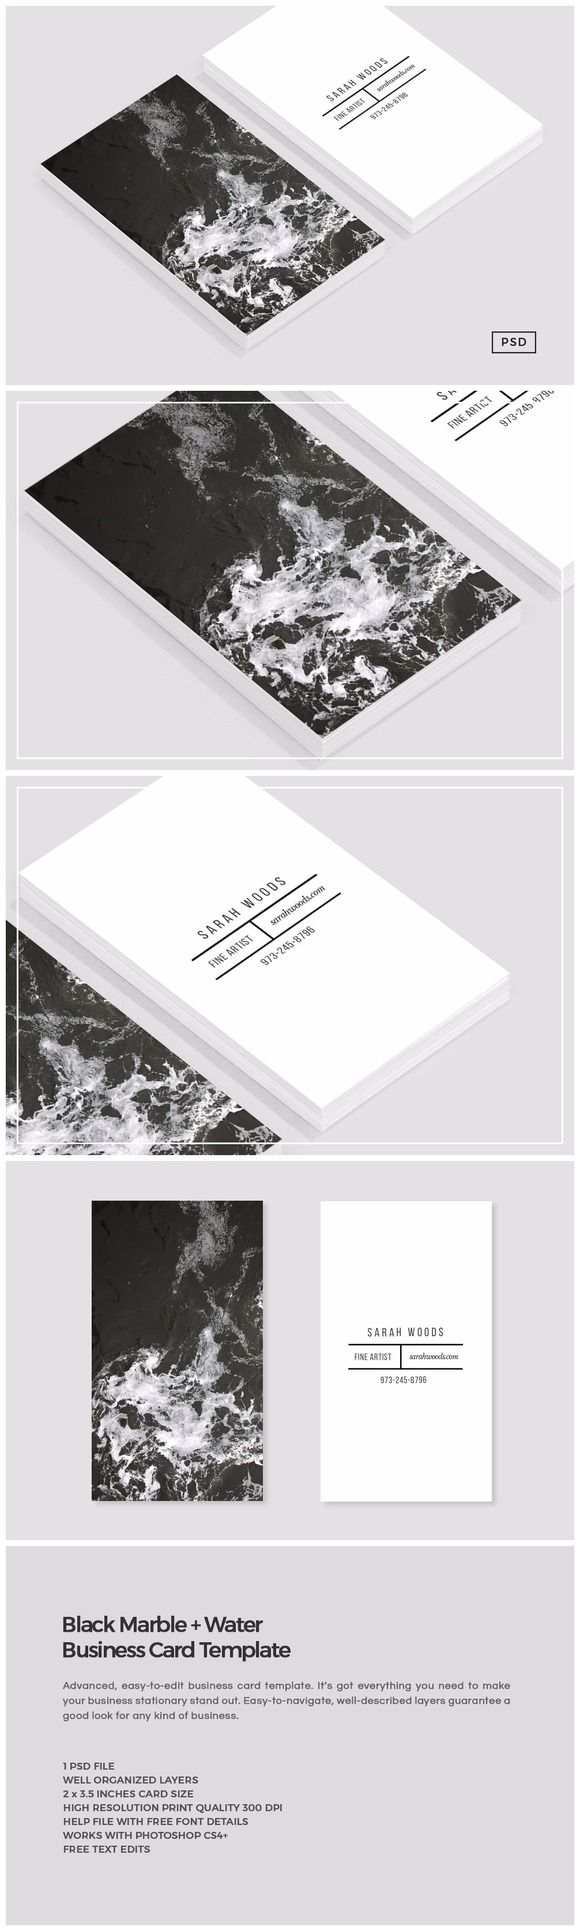 Black Marble Business Card Template By Design Co On Creativemarket